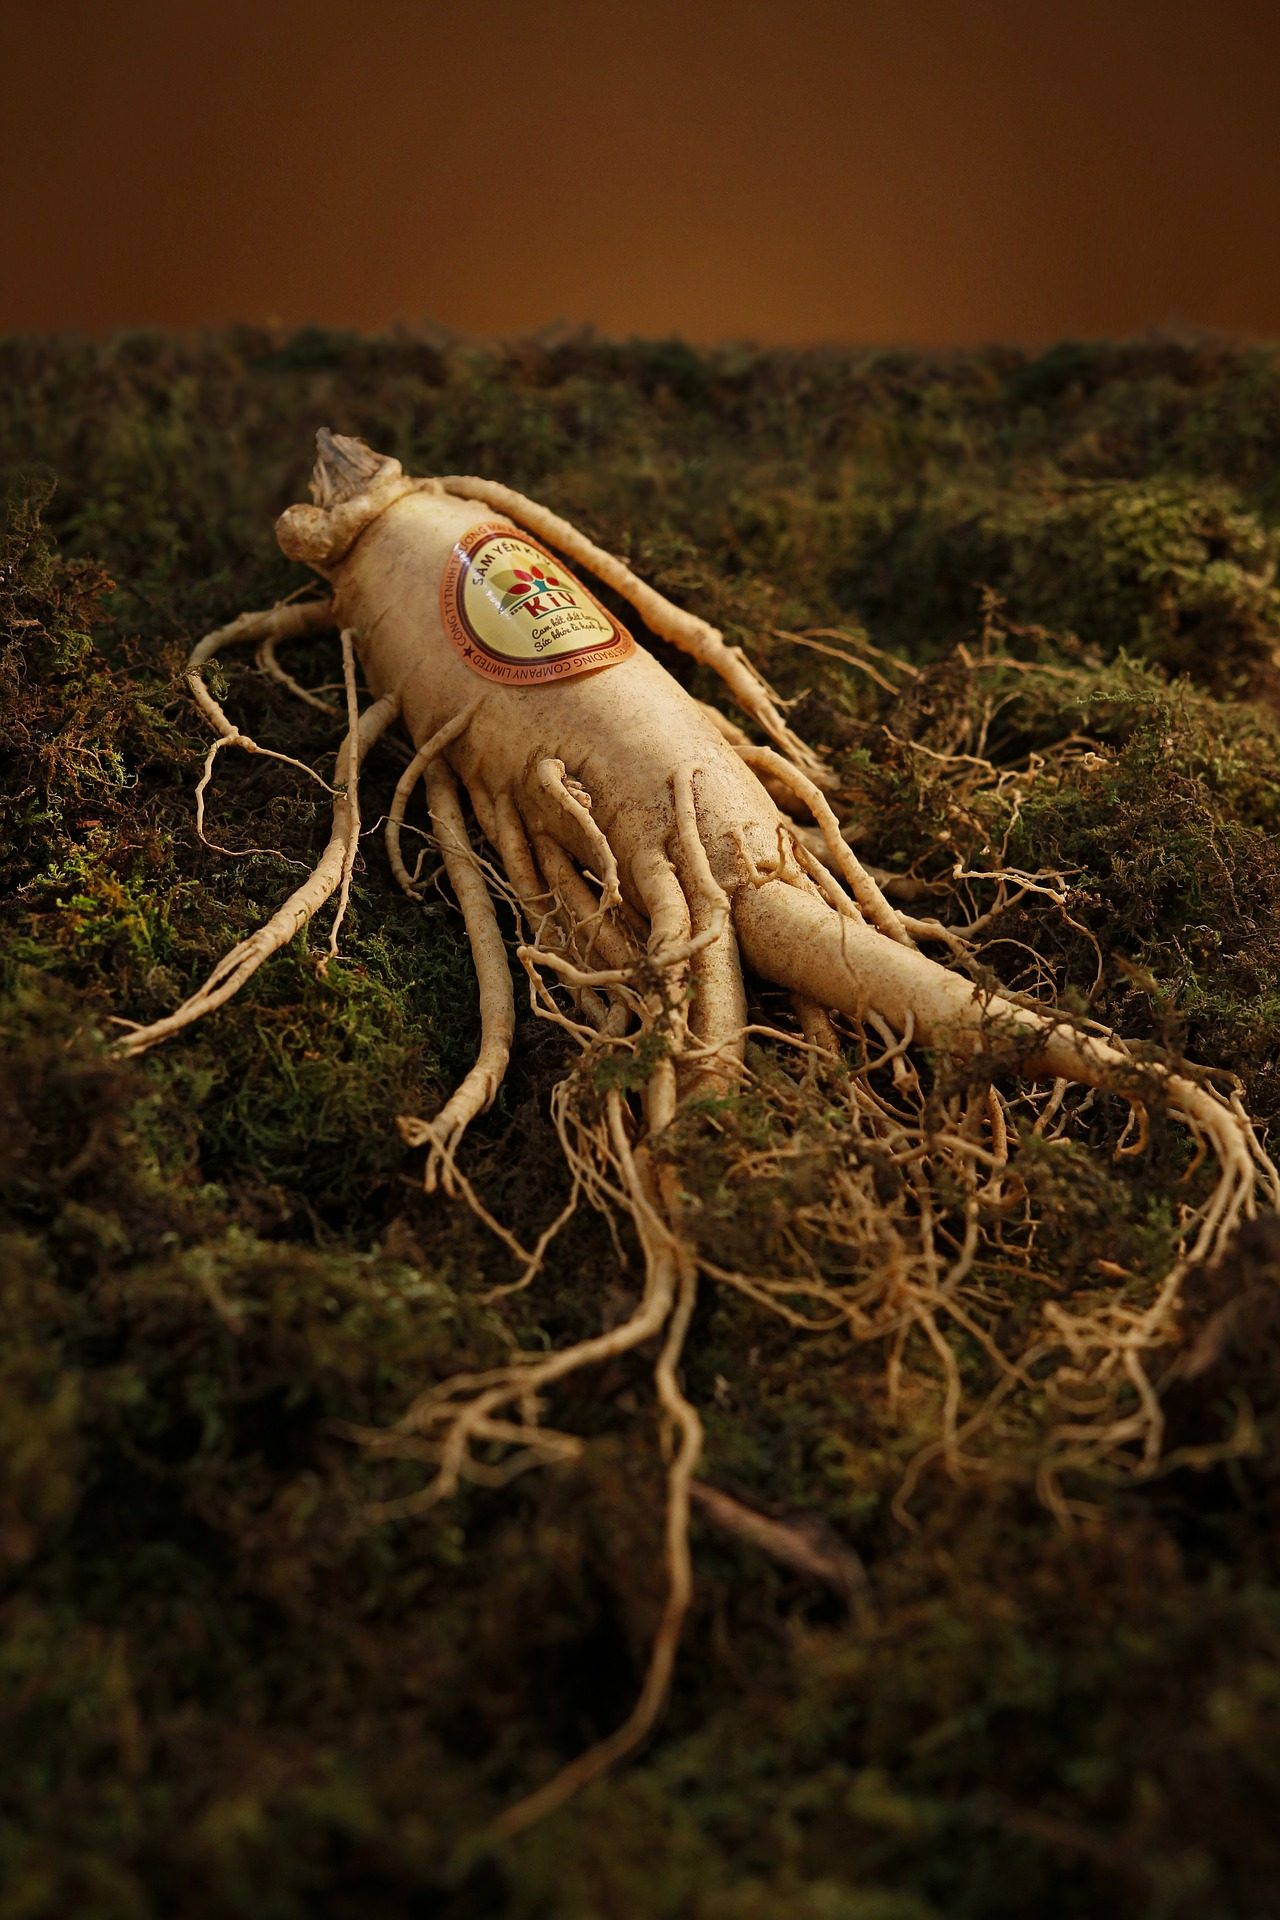 Wealthy Chinese will pay up to $200,000 for the vitality-enhancing properties of a premium grade ginseng root. (Image: pixabay / CC0 1.0)